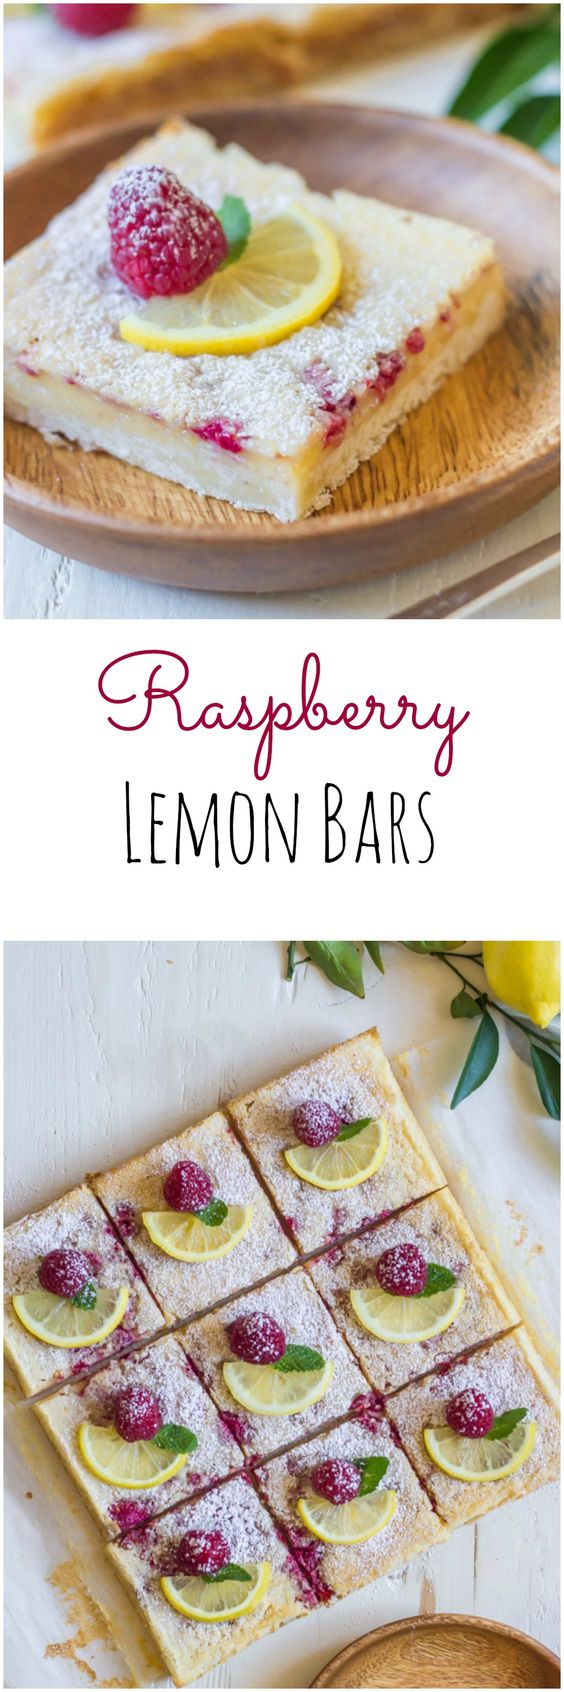 Fresh raspberries are whisked into a sweet and tart lemon filling - all on top of a thick, buttery shortbread crust°°